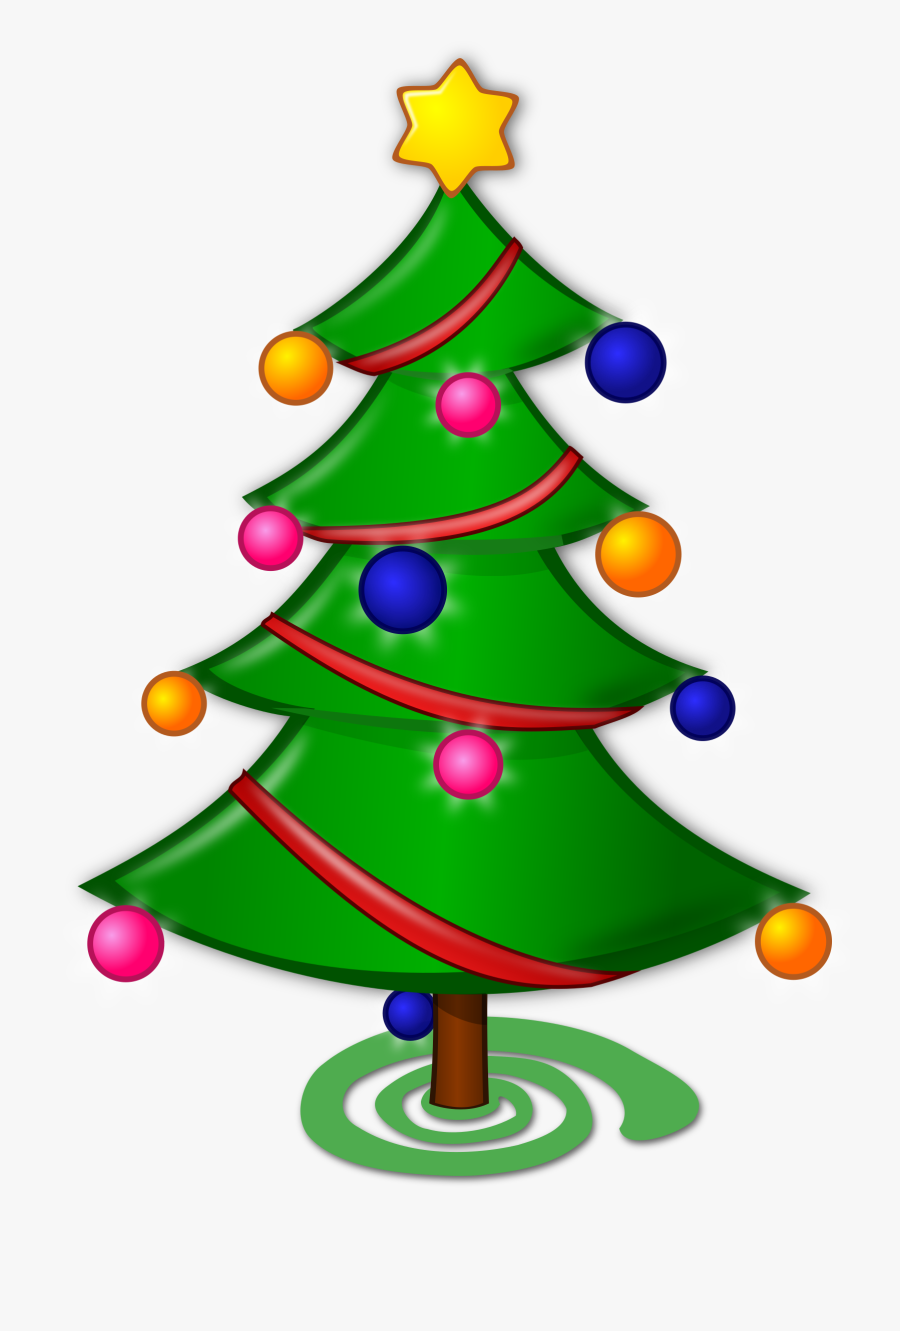 Christmas Tree Clipart - Merry Christmas Tree Drawing, Transparent Clipart